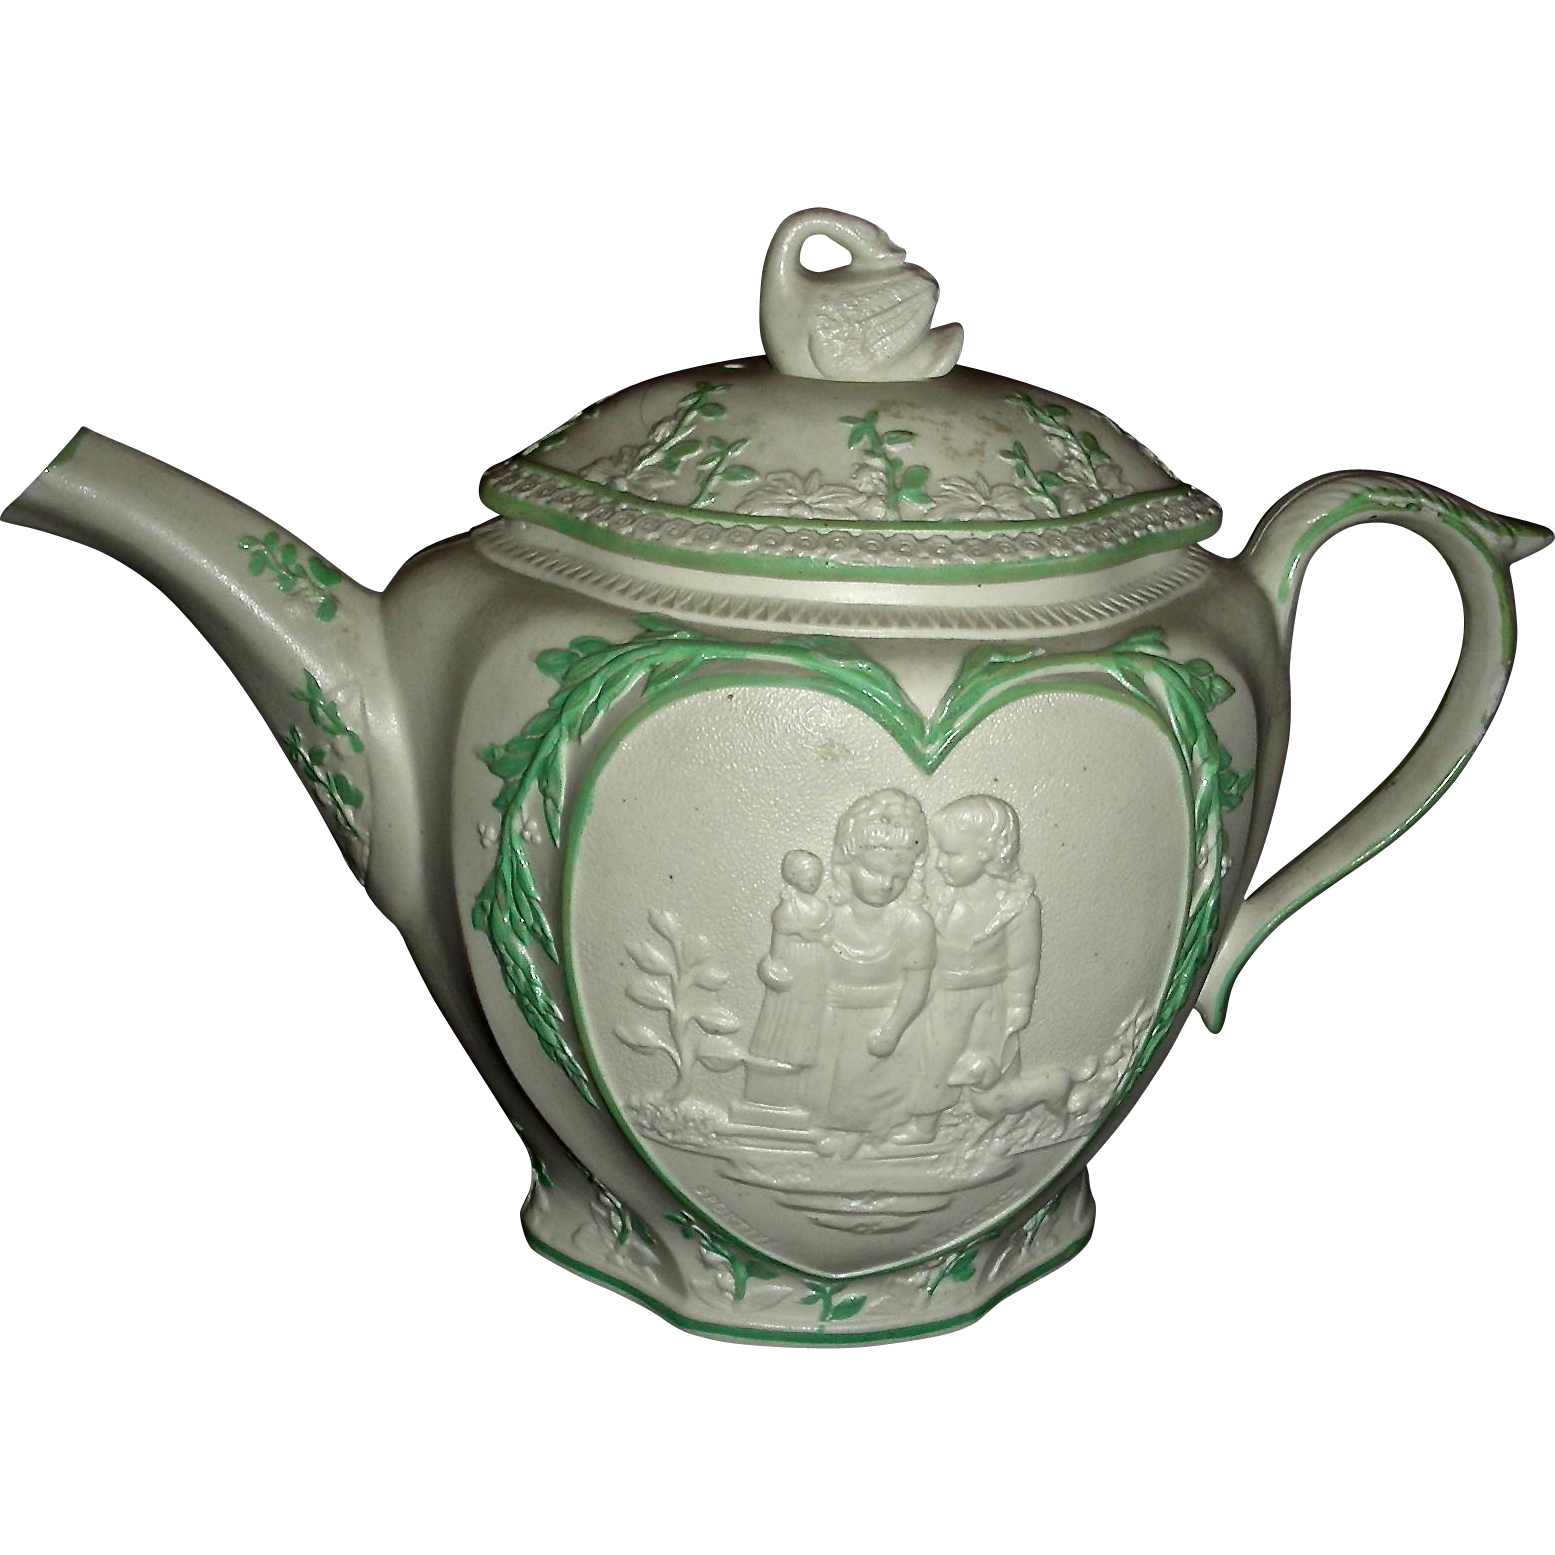 Staffordshire Molded (or Sprig Decorated) Stoneware & Green Enameled Teapot, c. 1790: Sportive Innocence & Mischievous Sport